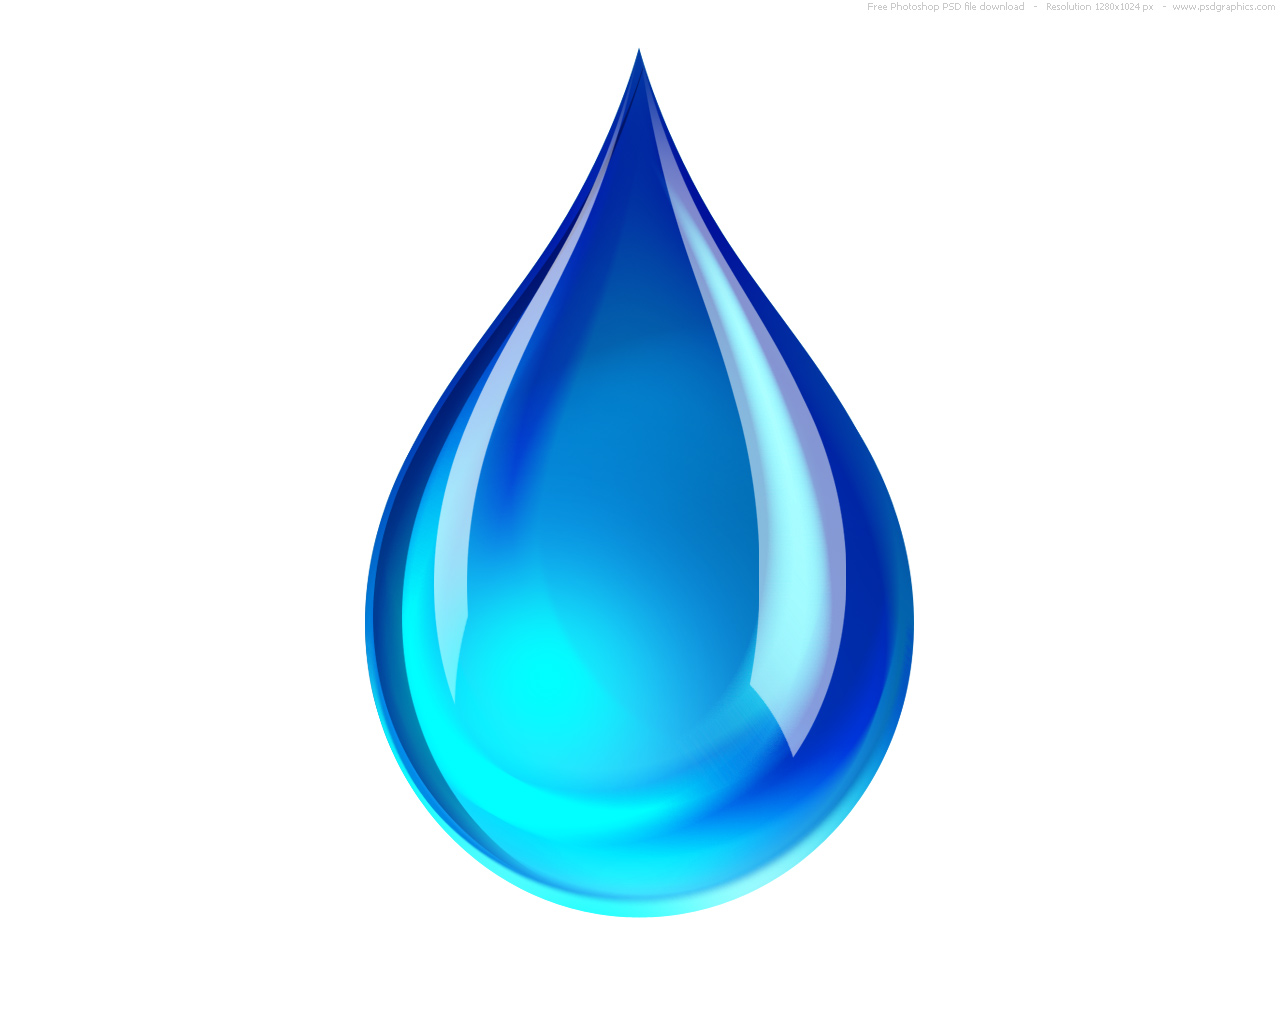 Svg Free Water Services image #27547